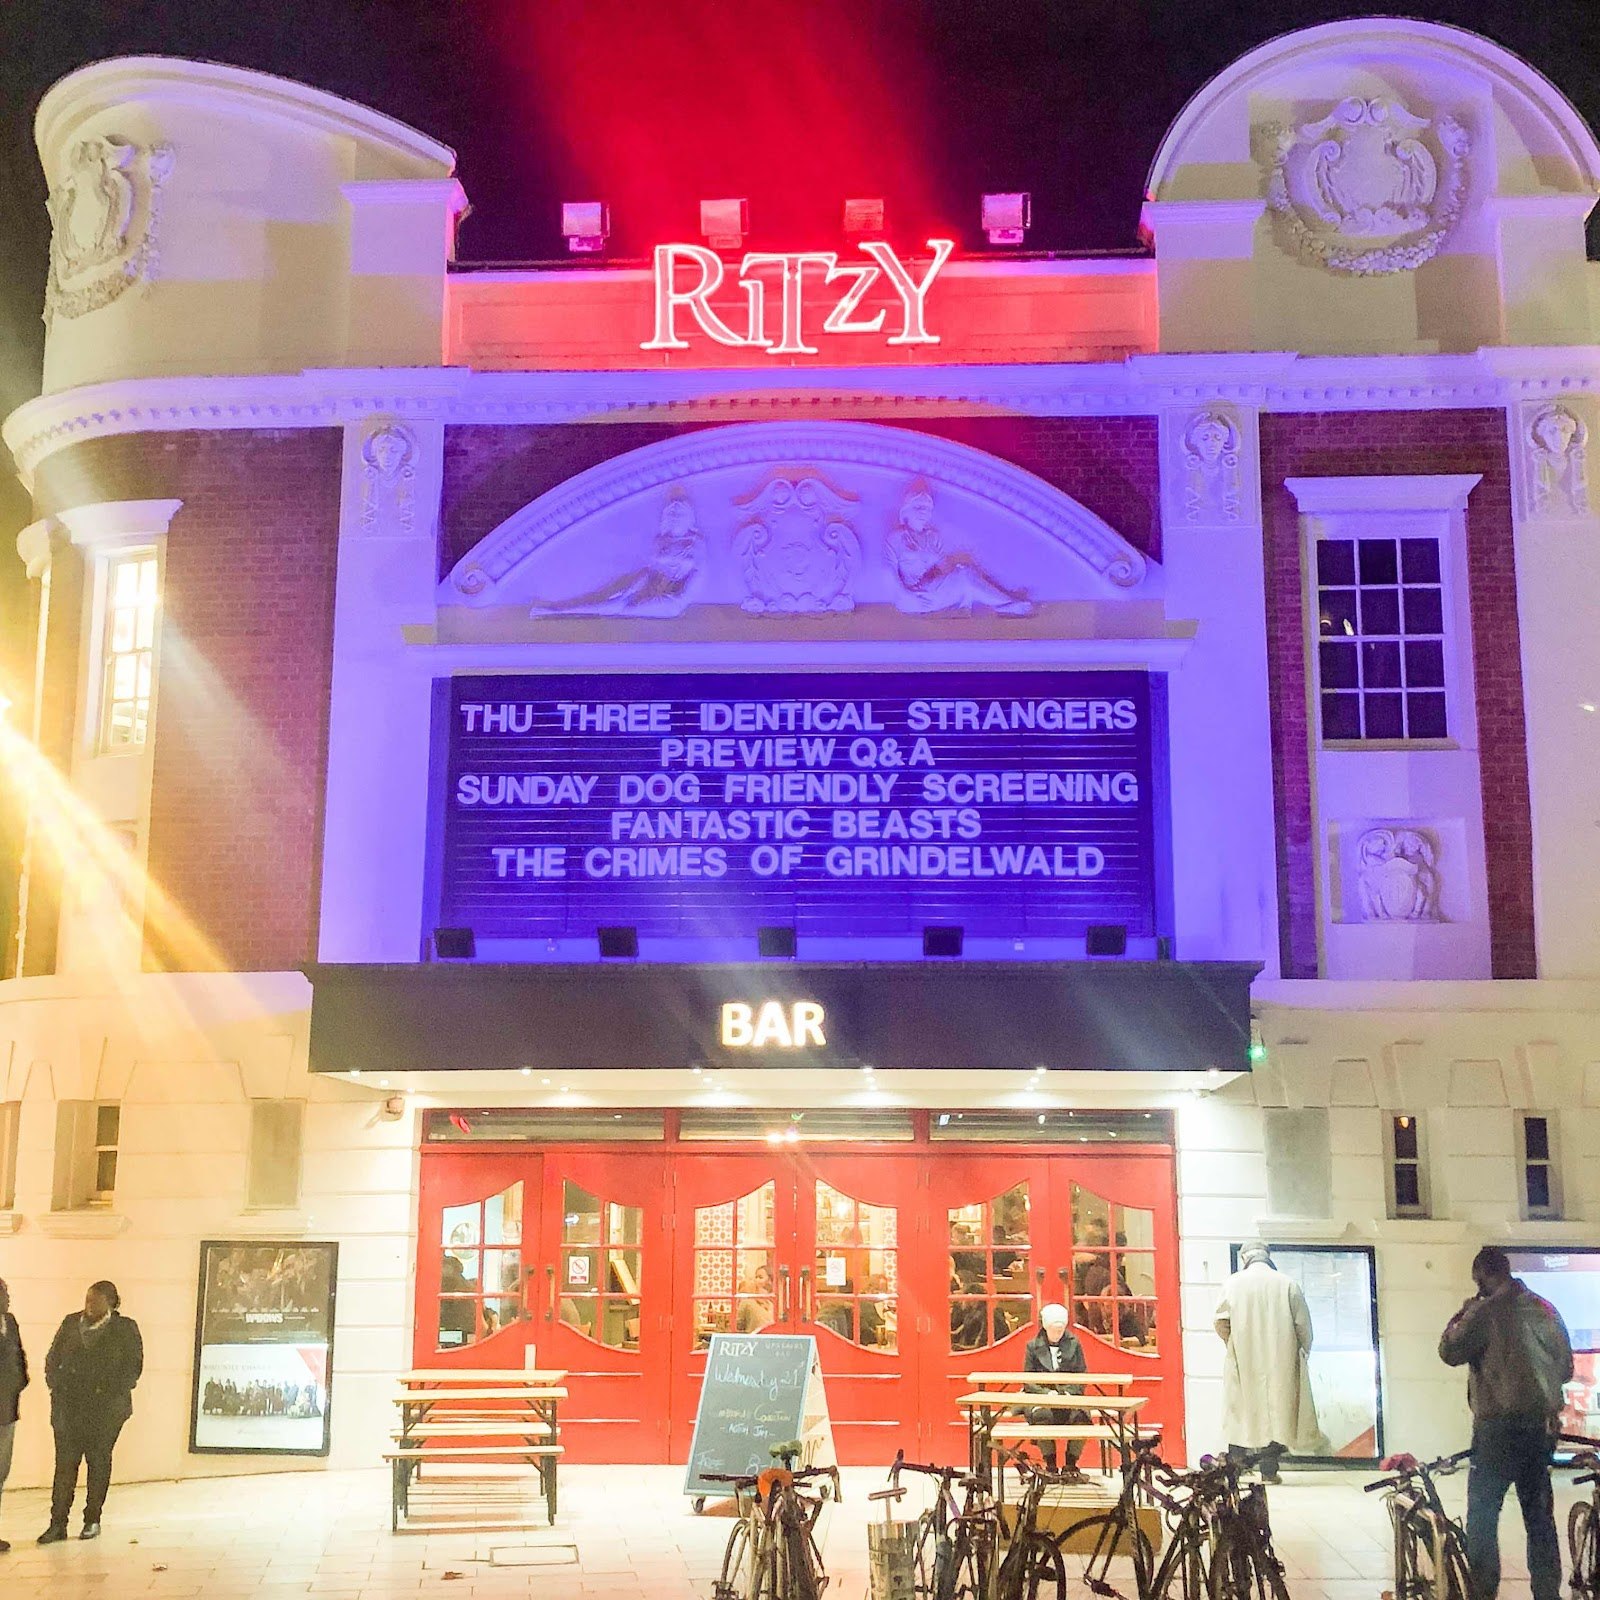 london-lifestyle-blog-brixton-ritzy-cinema-fantastic-beasts-and-where-to-find-them-the-crimes-of-grindelwald